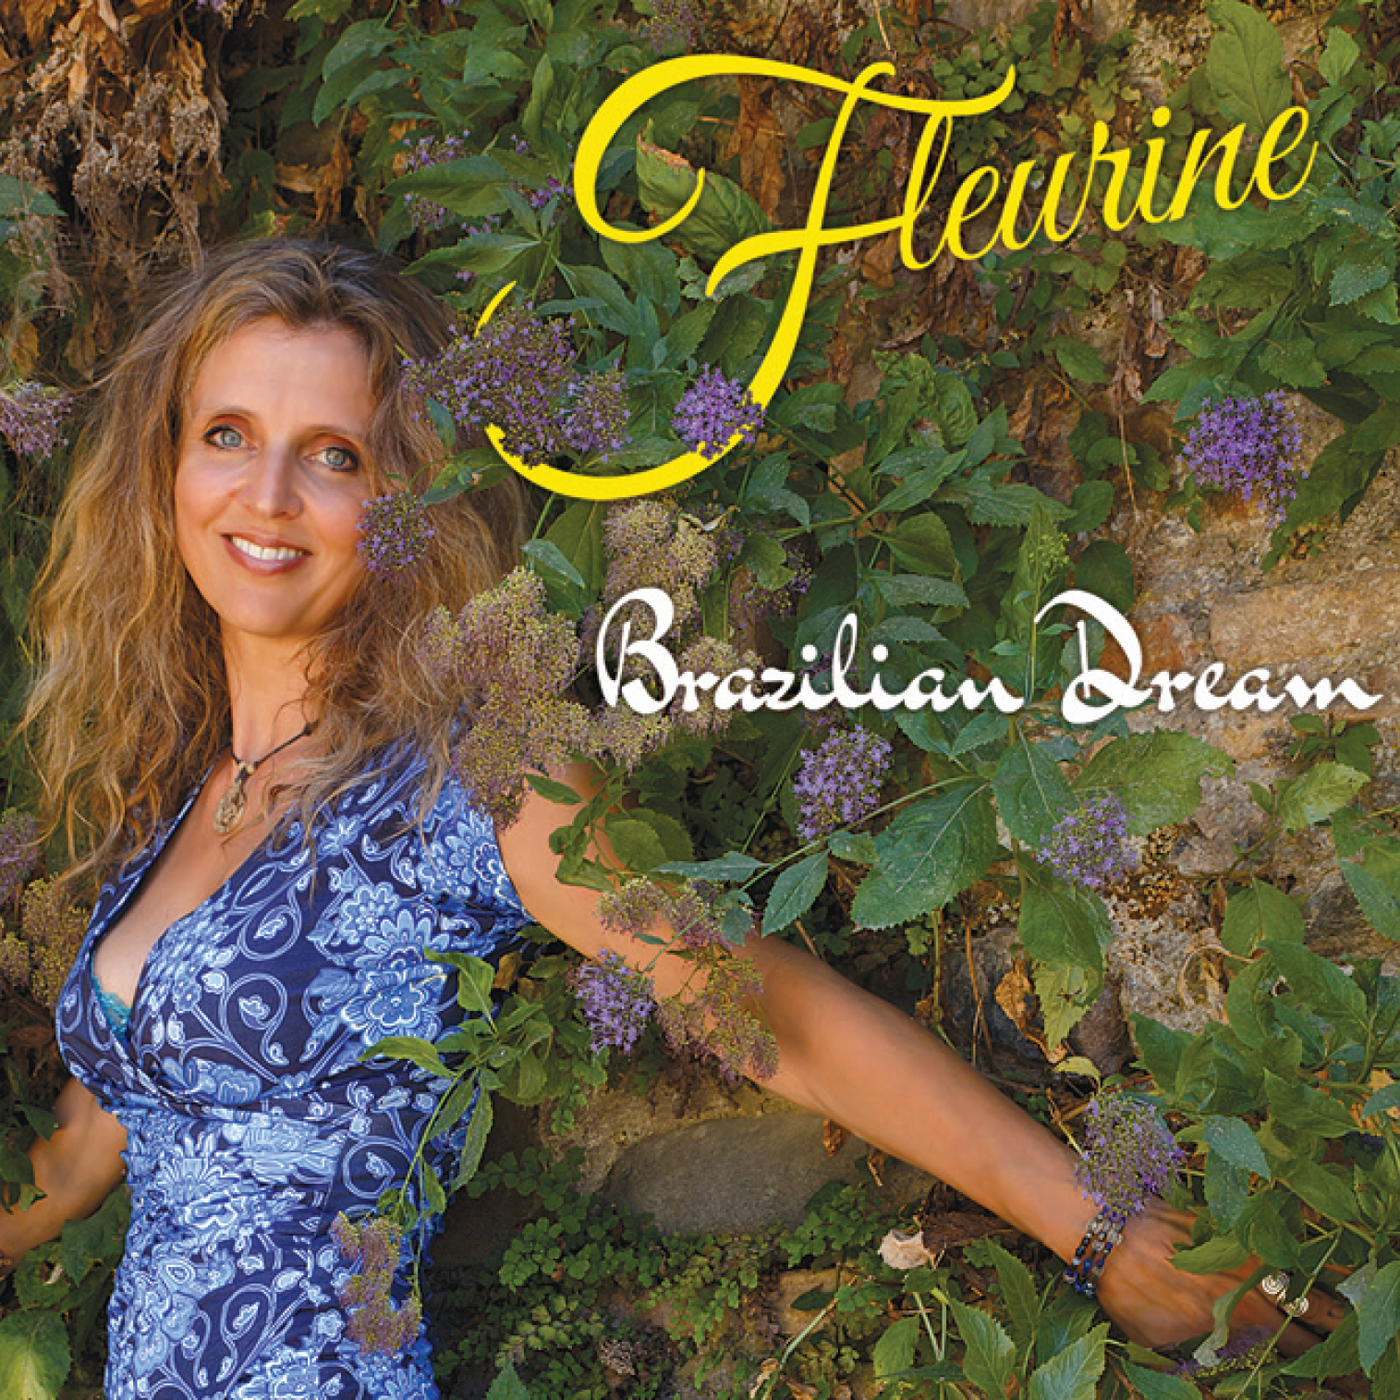 Brazilian Dream  by   Fleurine cover